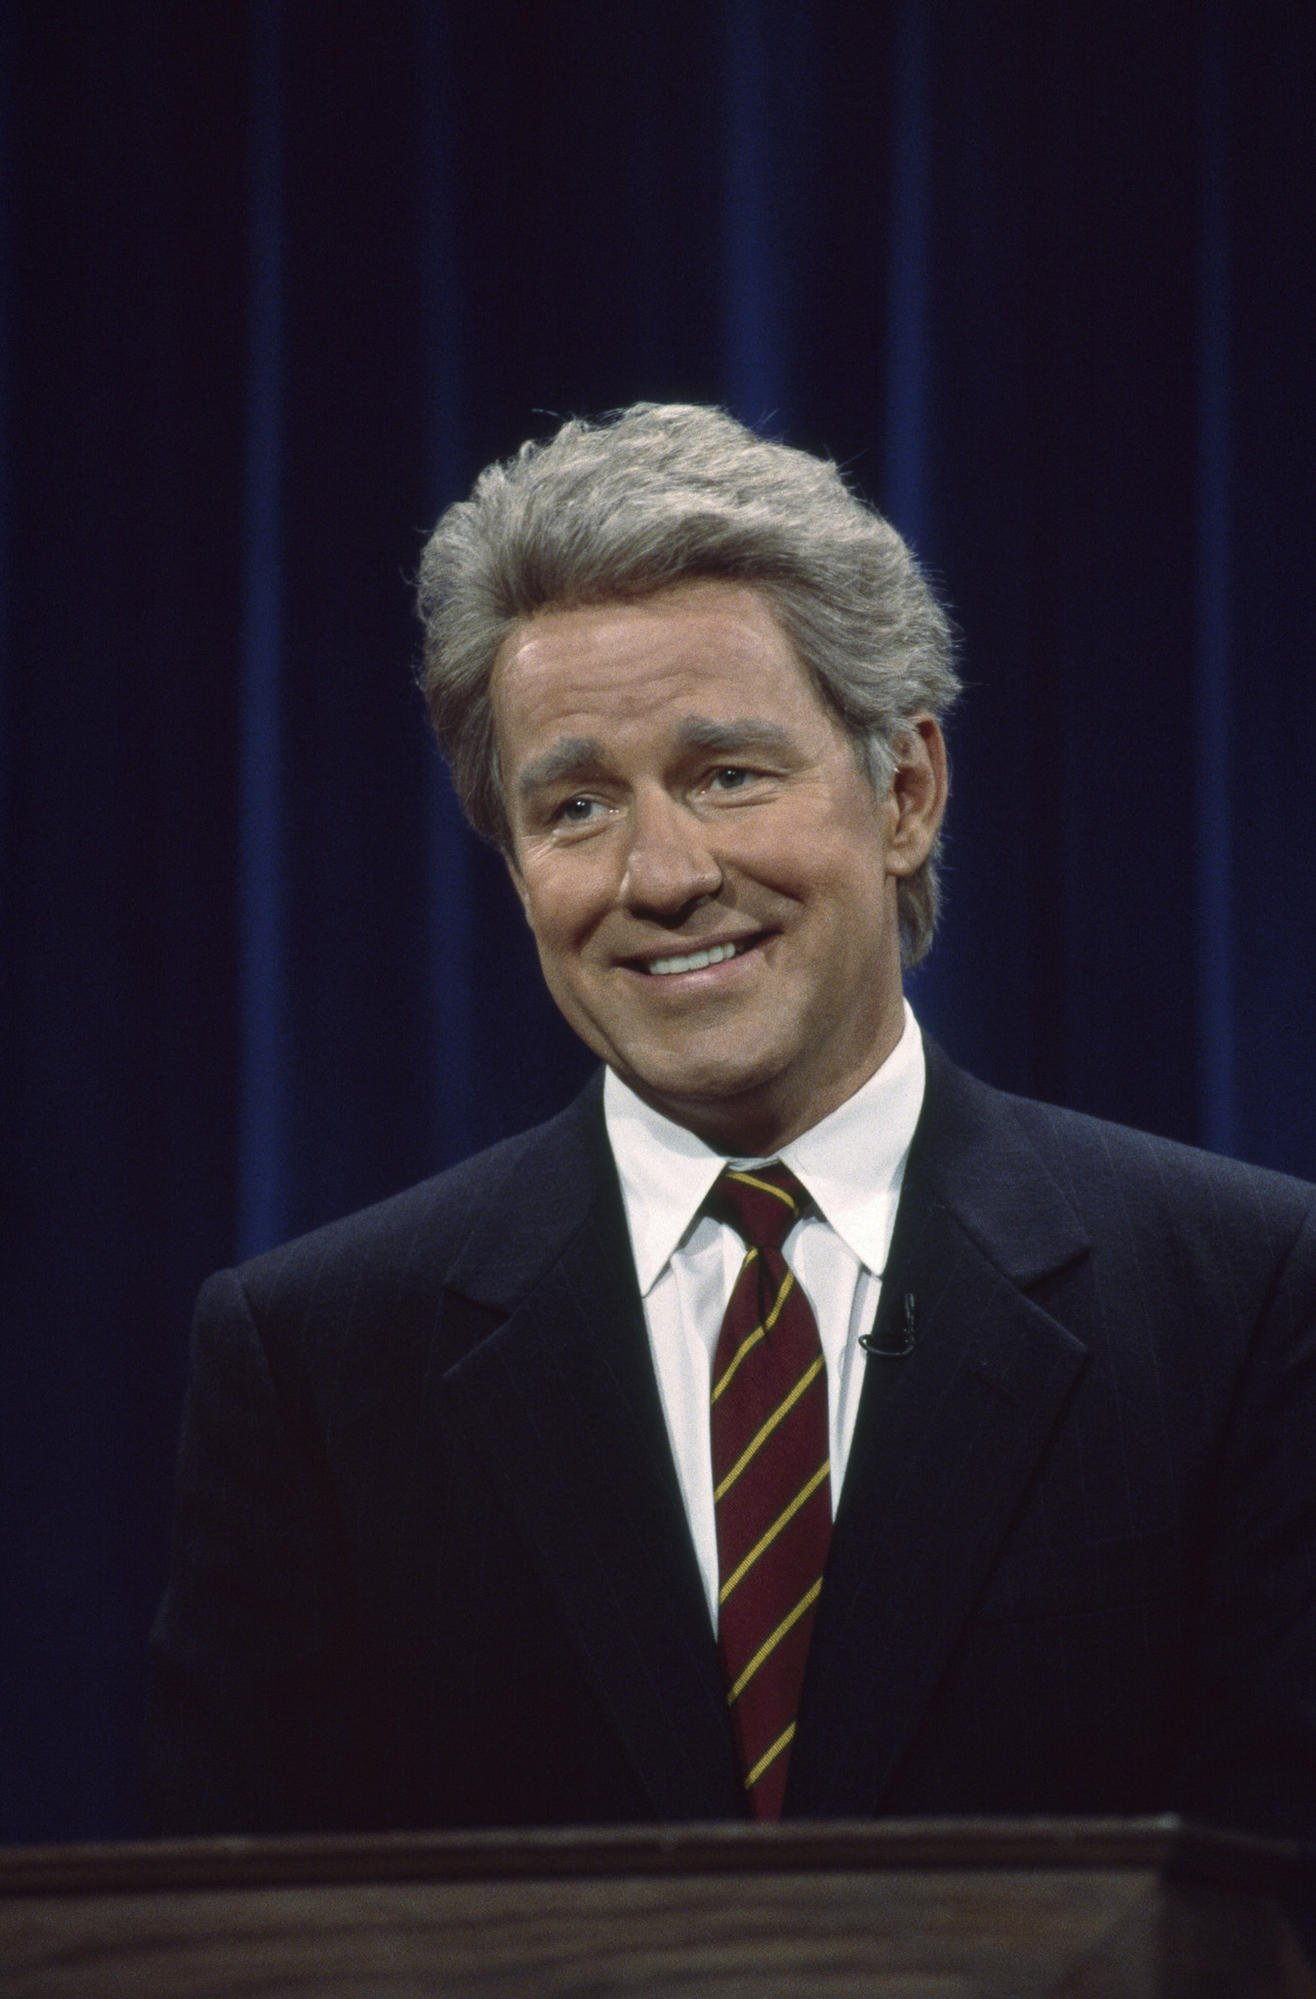 From the Archives: Actor Phil Hartman, Wife Killed in Murder-Suicide - Los Angeles Times